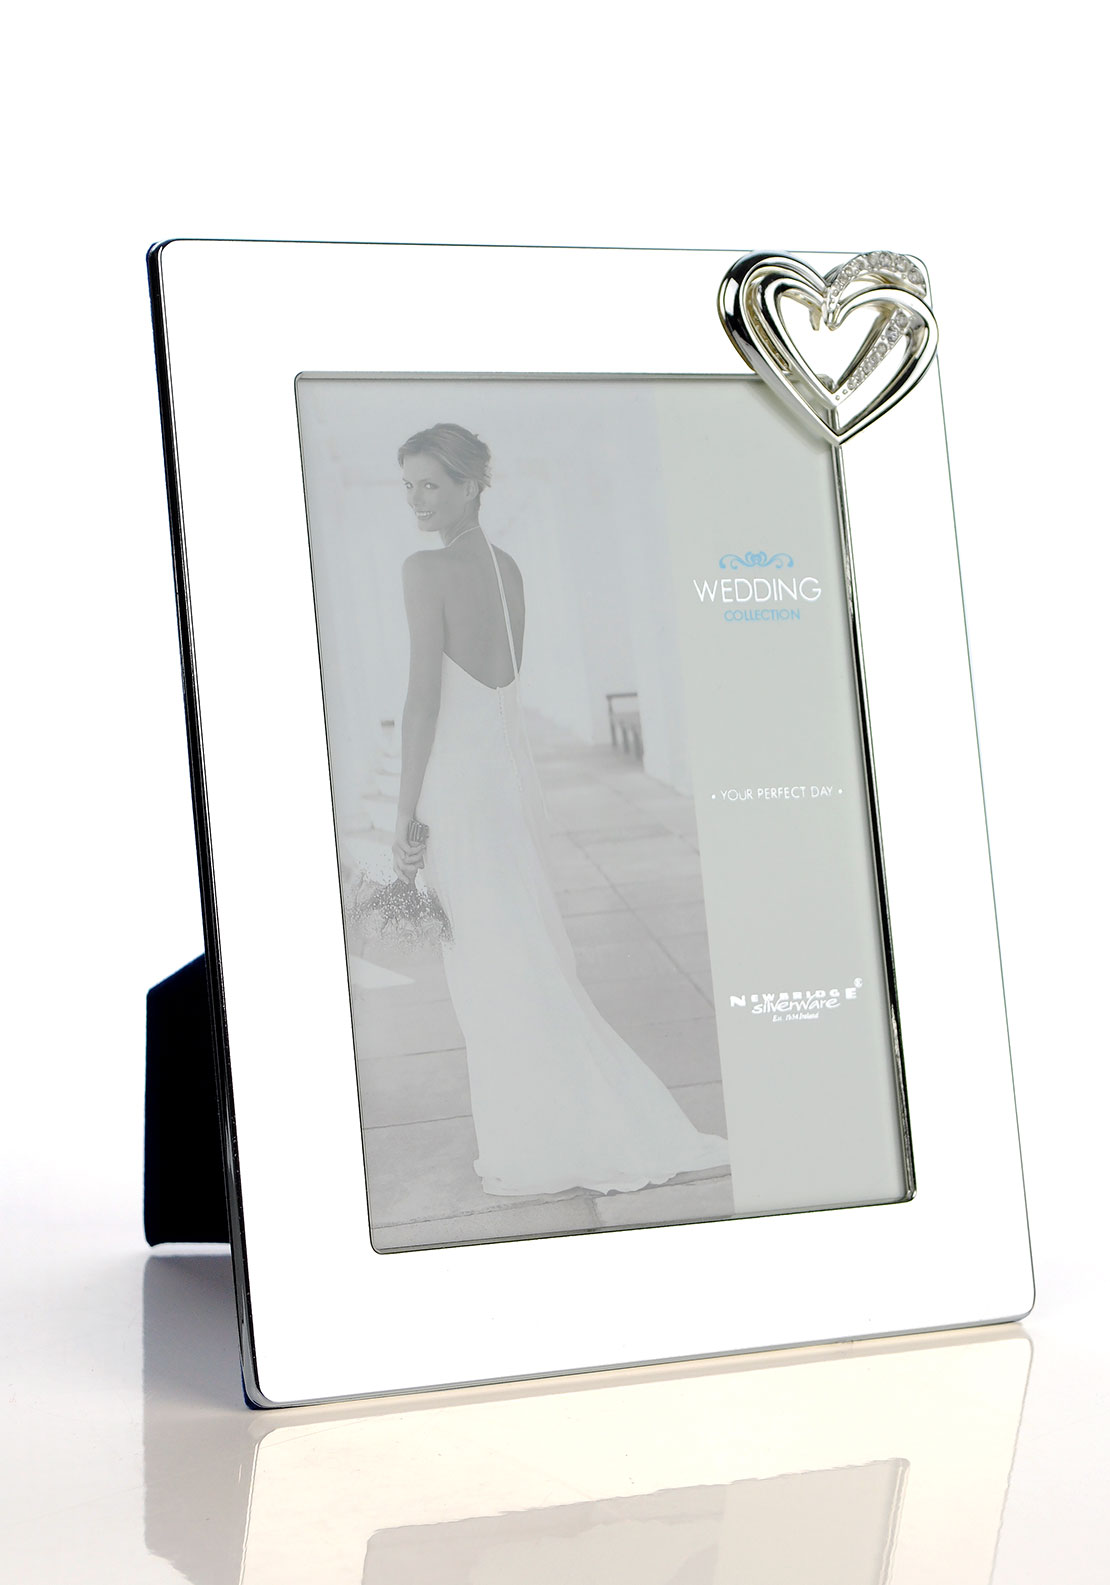 Newbridge Wedding Collection Bridal Photo Frame, 5 x 7 inches